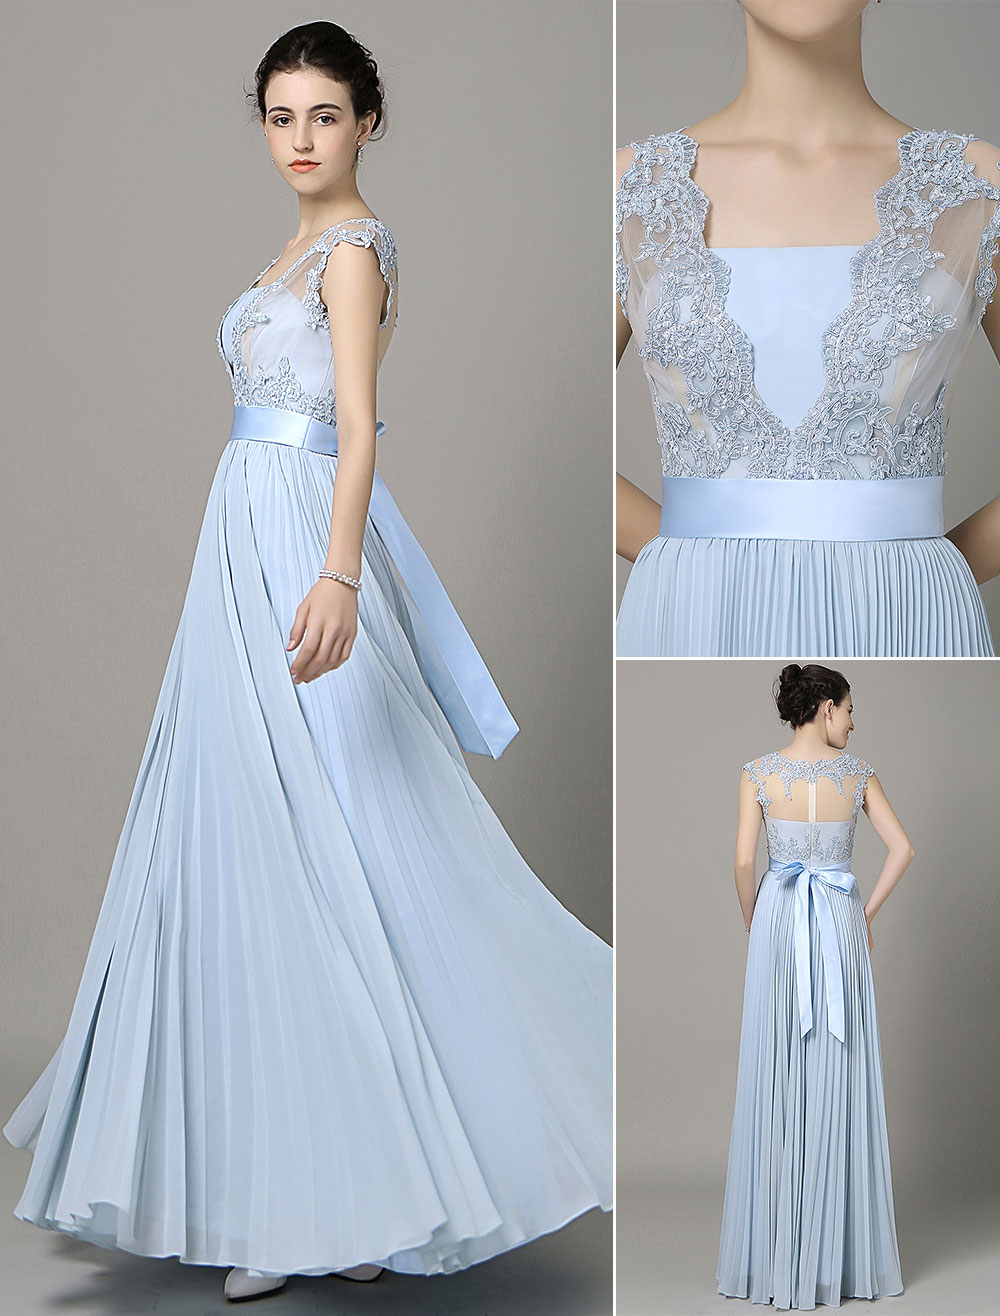 Blue Prom Dress 2018 Long Chiffon Lace Applique Bridesmaid Dress V Neck Bow Sash Pleated Floor Length Party Dress Milanoo